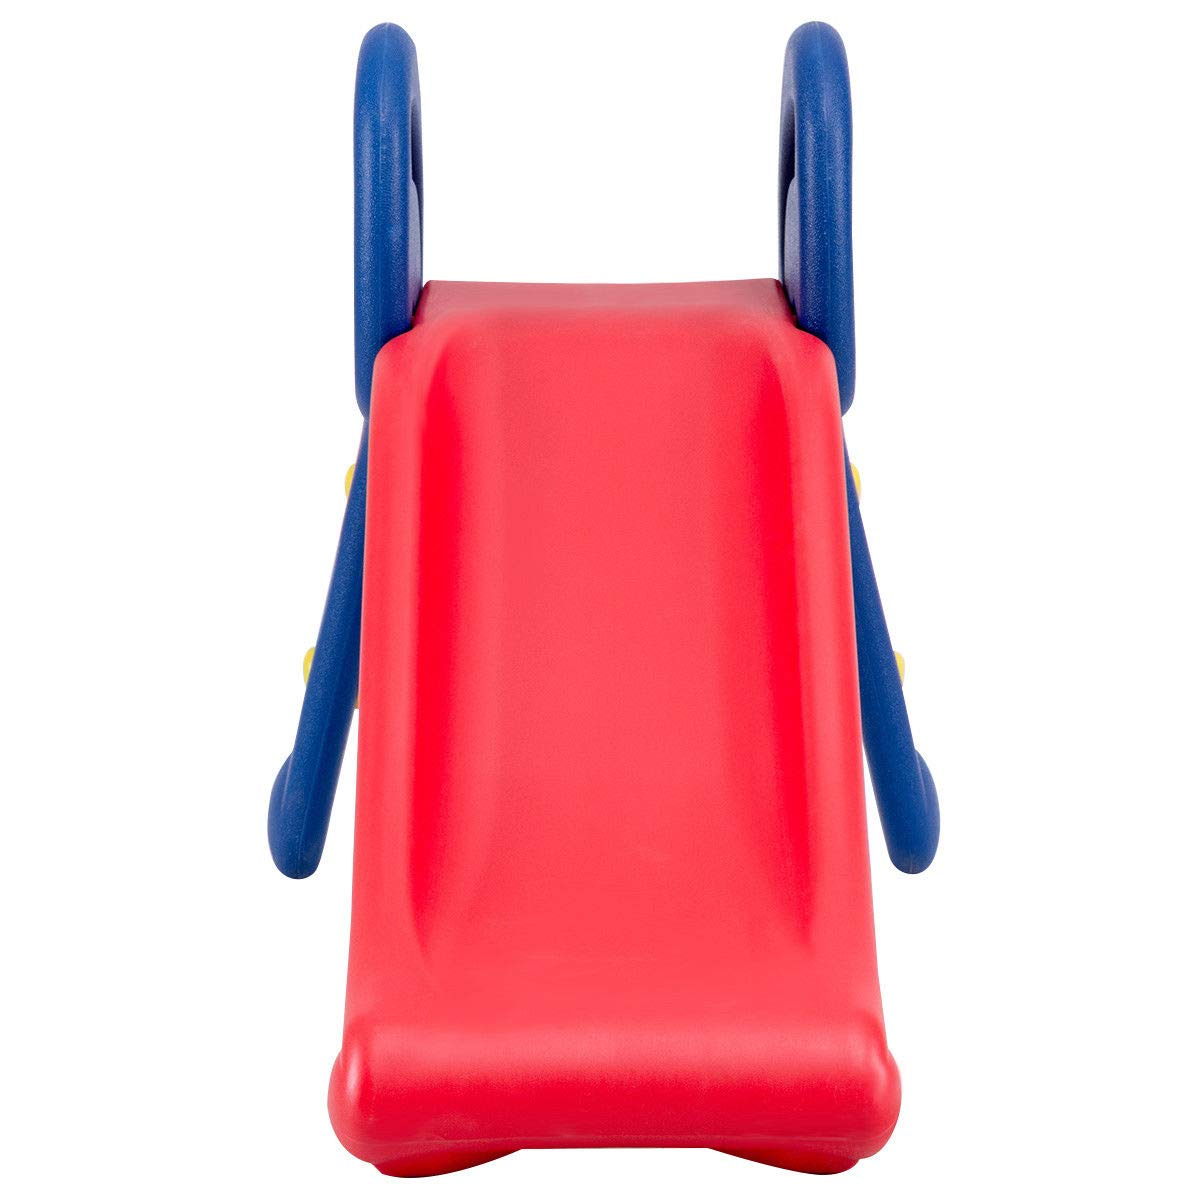 Heavens Tvcz Slide Plastic Folding Kids Fun Toy Up-Down Children Play Fun Step Rails Toddler Big High Side Portable Outdoor Indoor by Heavens Tvcz (Image #5)